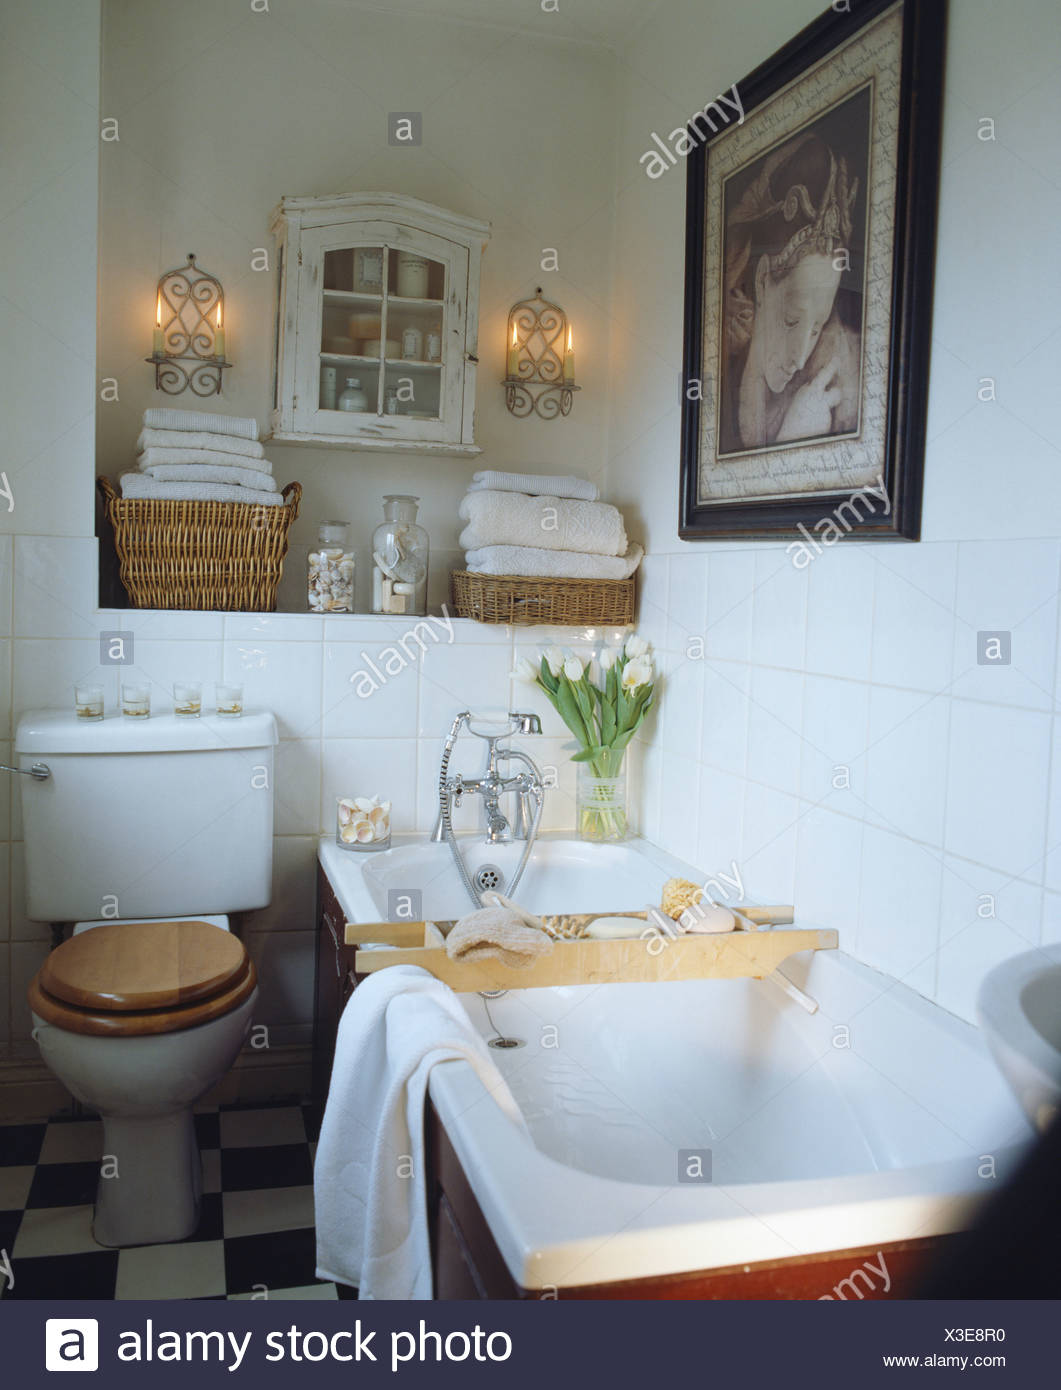 Wood rack across bath in white tiled country bathroom with wall ...